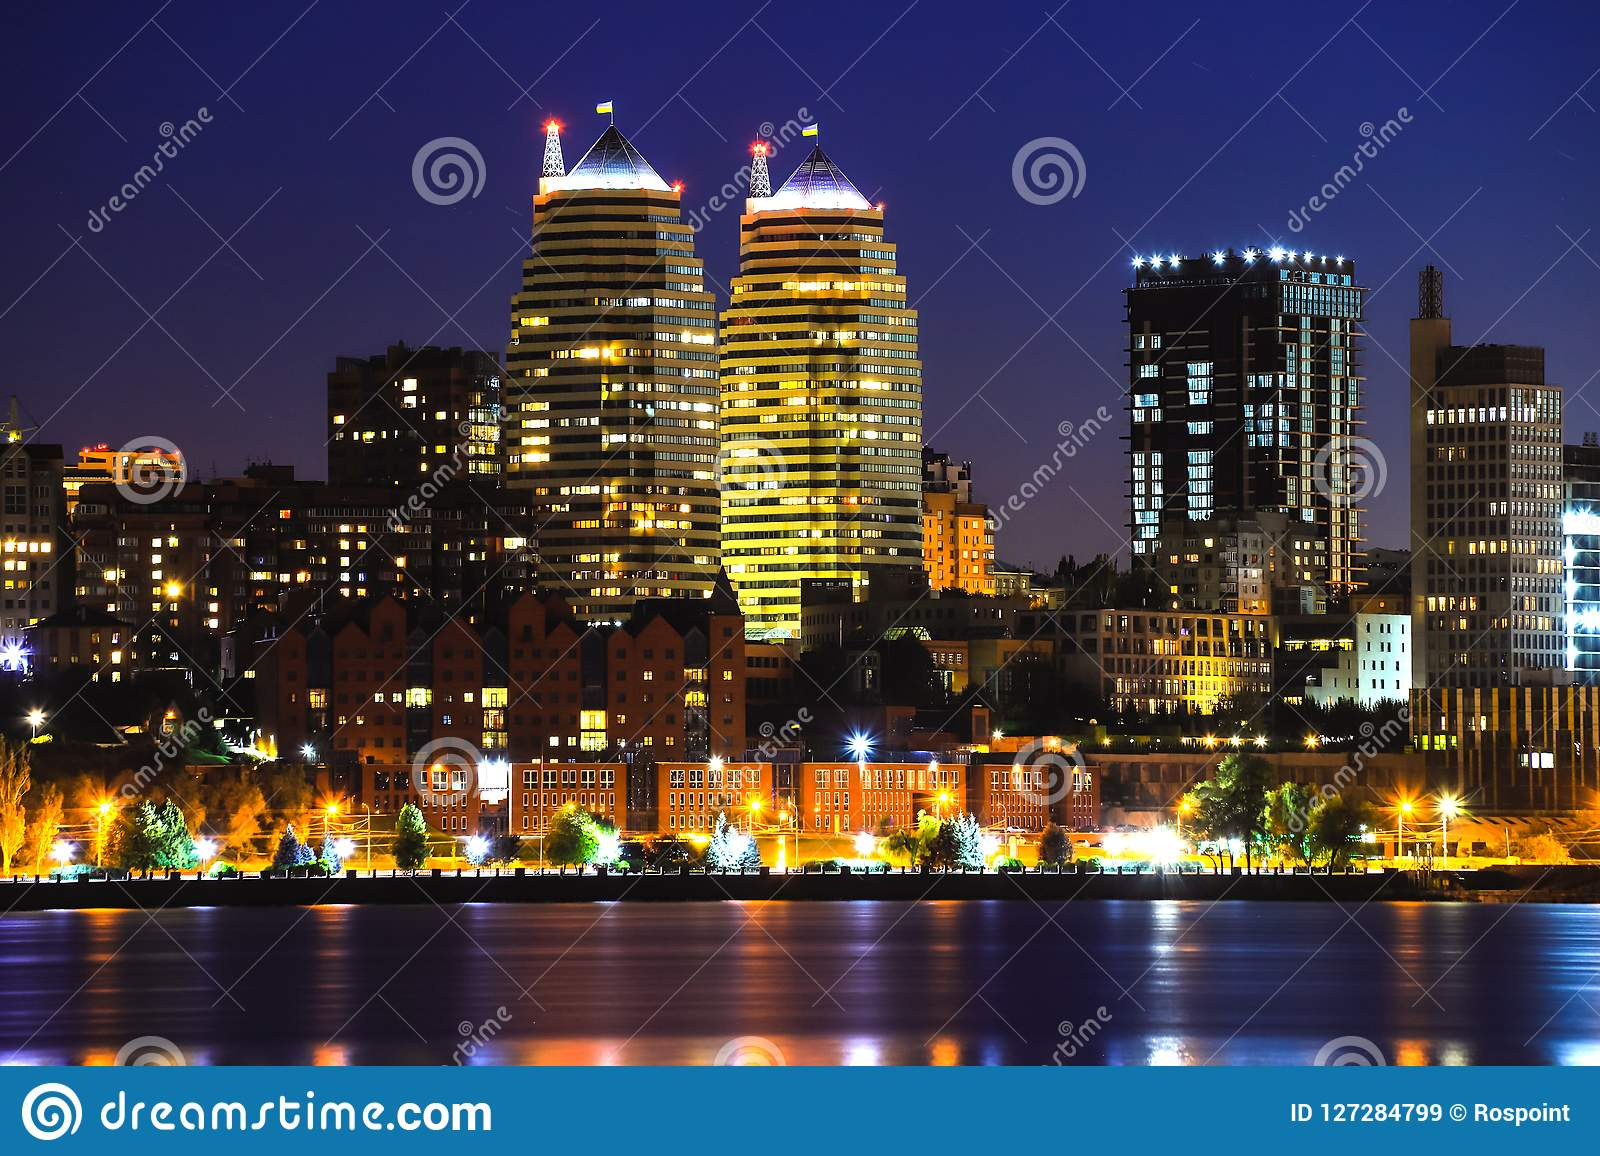 View of the towers, skyscrapers and buildings in Dnepr city at night, lights reflected on the river Dnieper, Ukraine.